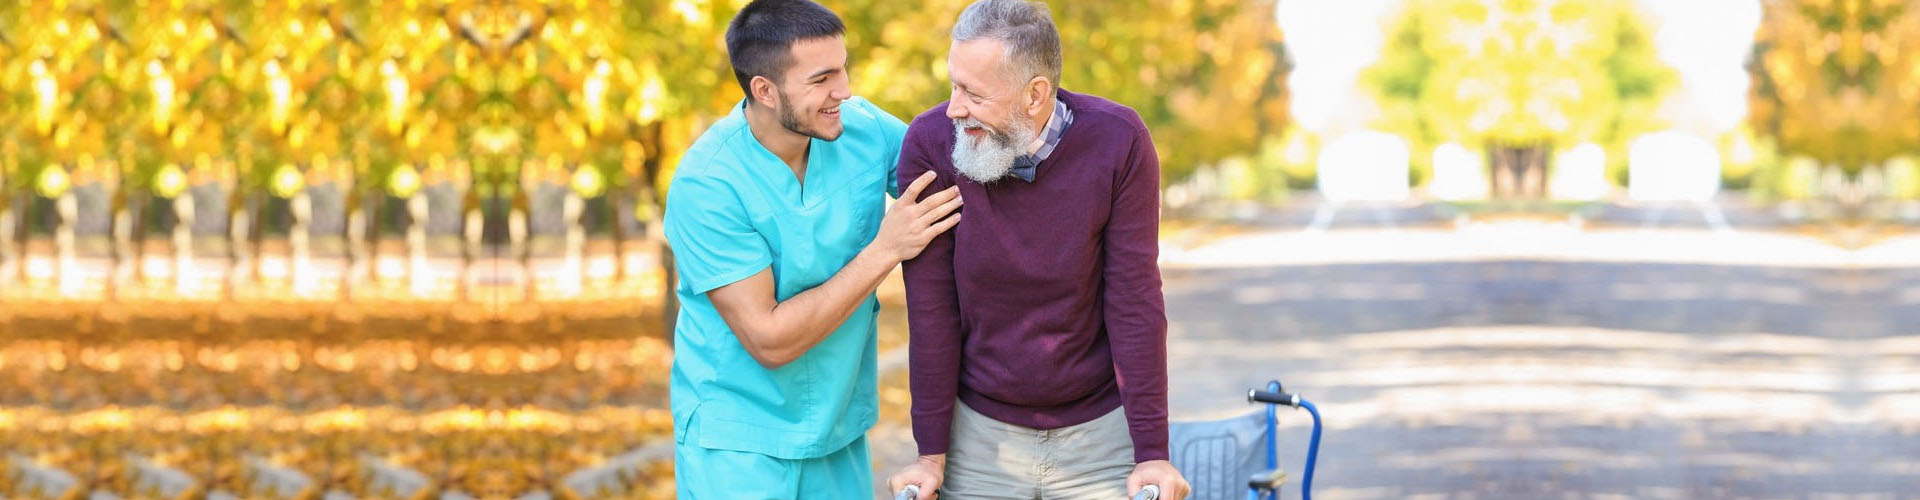 a caregiver accompanying a senior man walk outside